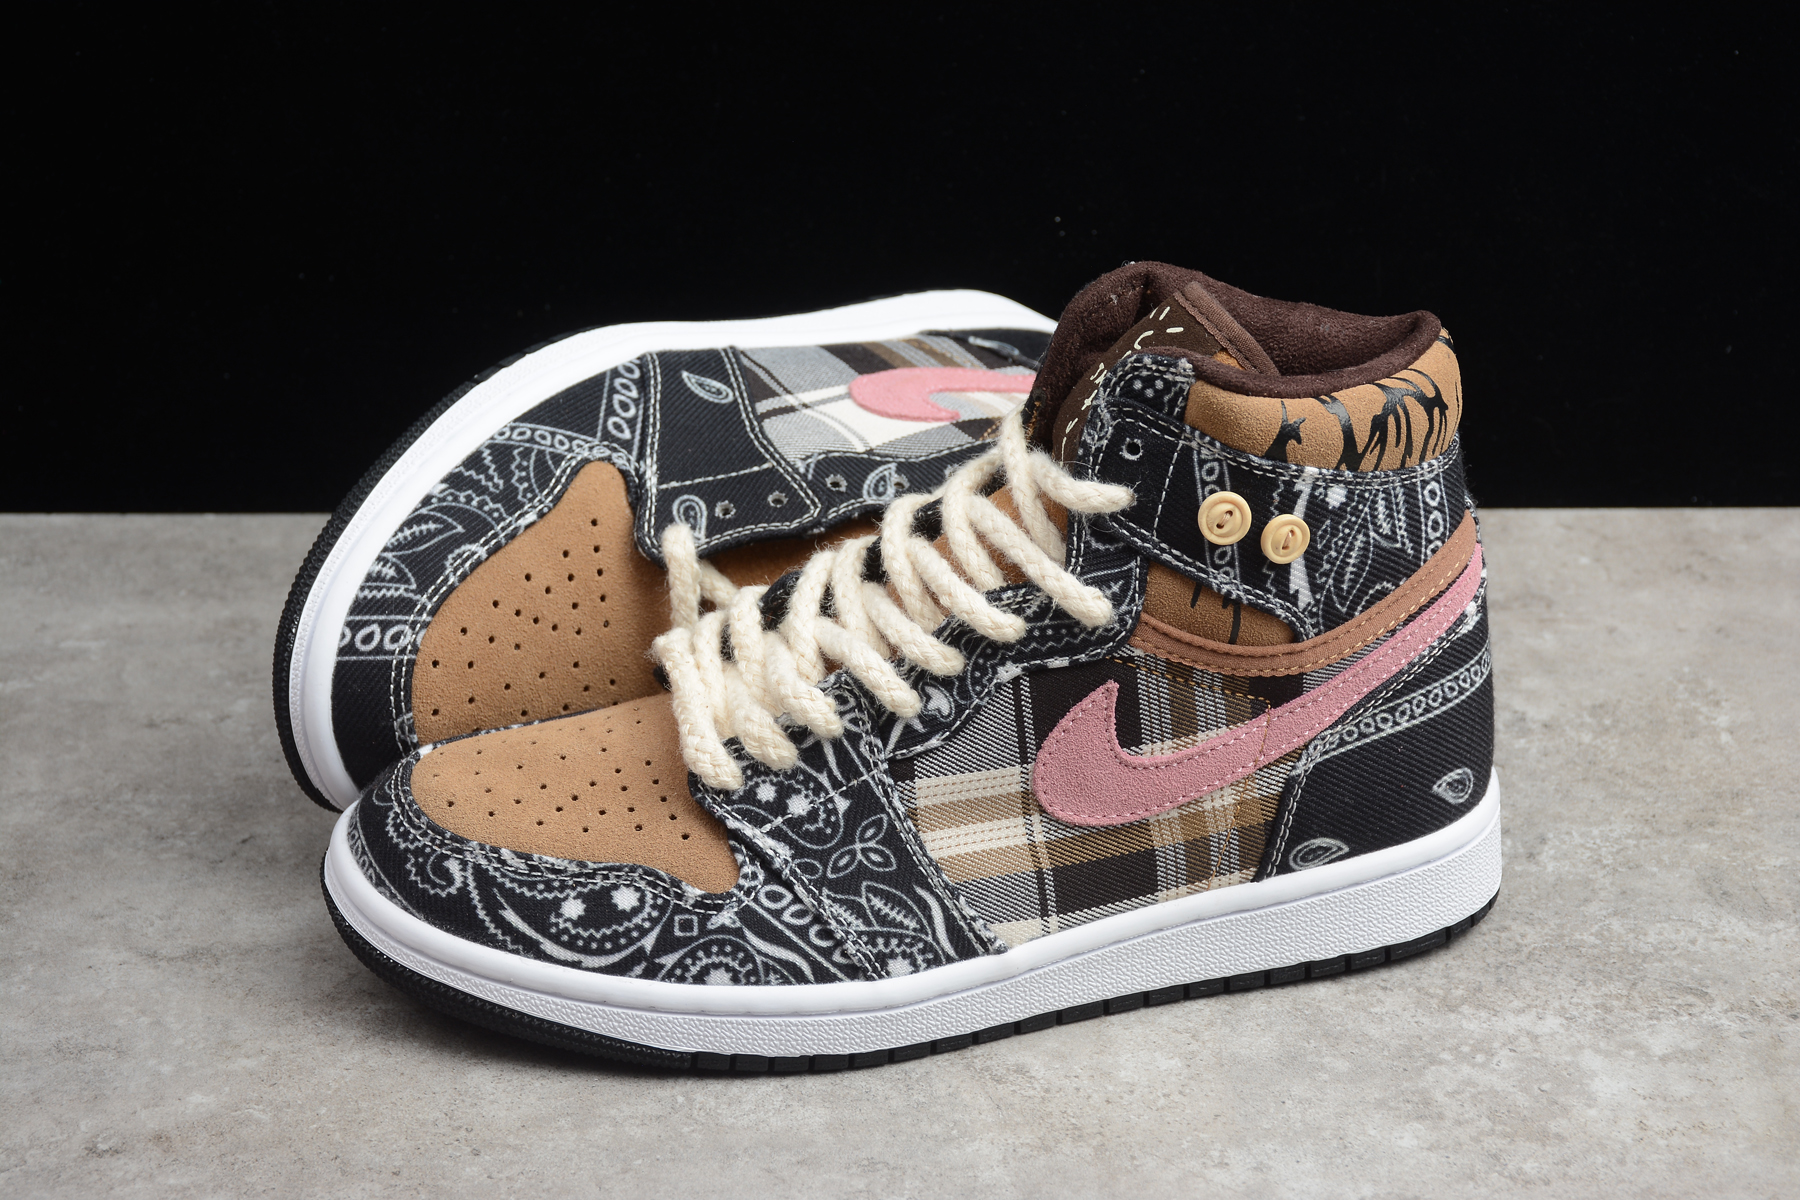 2020 Air Jordan 1 Brown Black White Pink Shoes